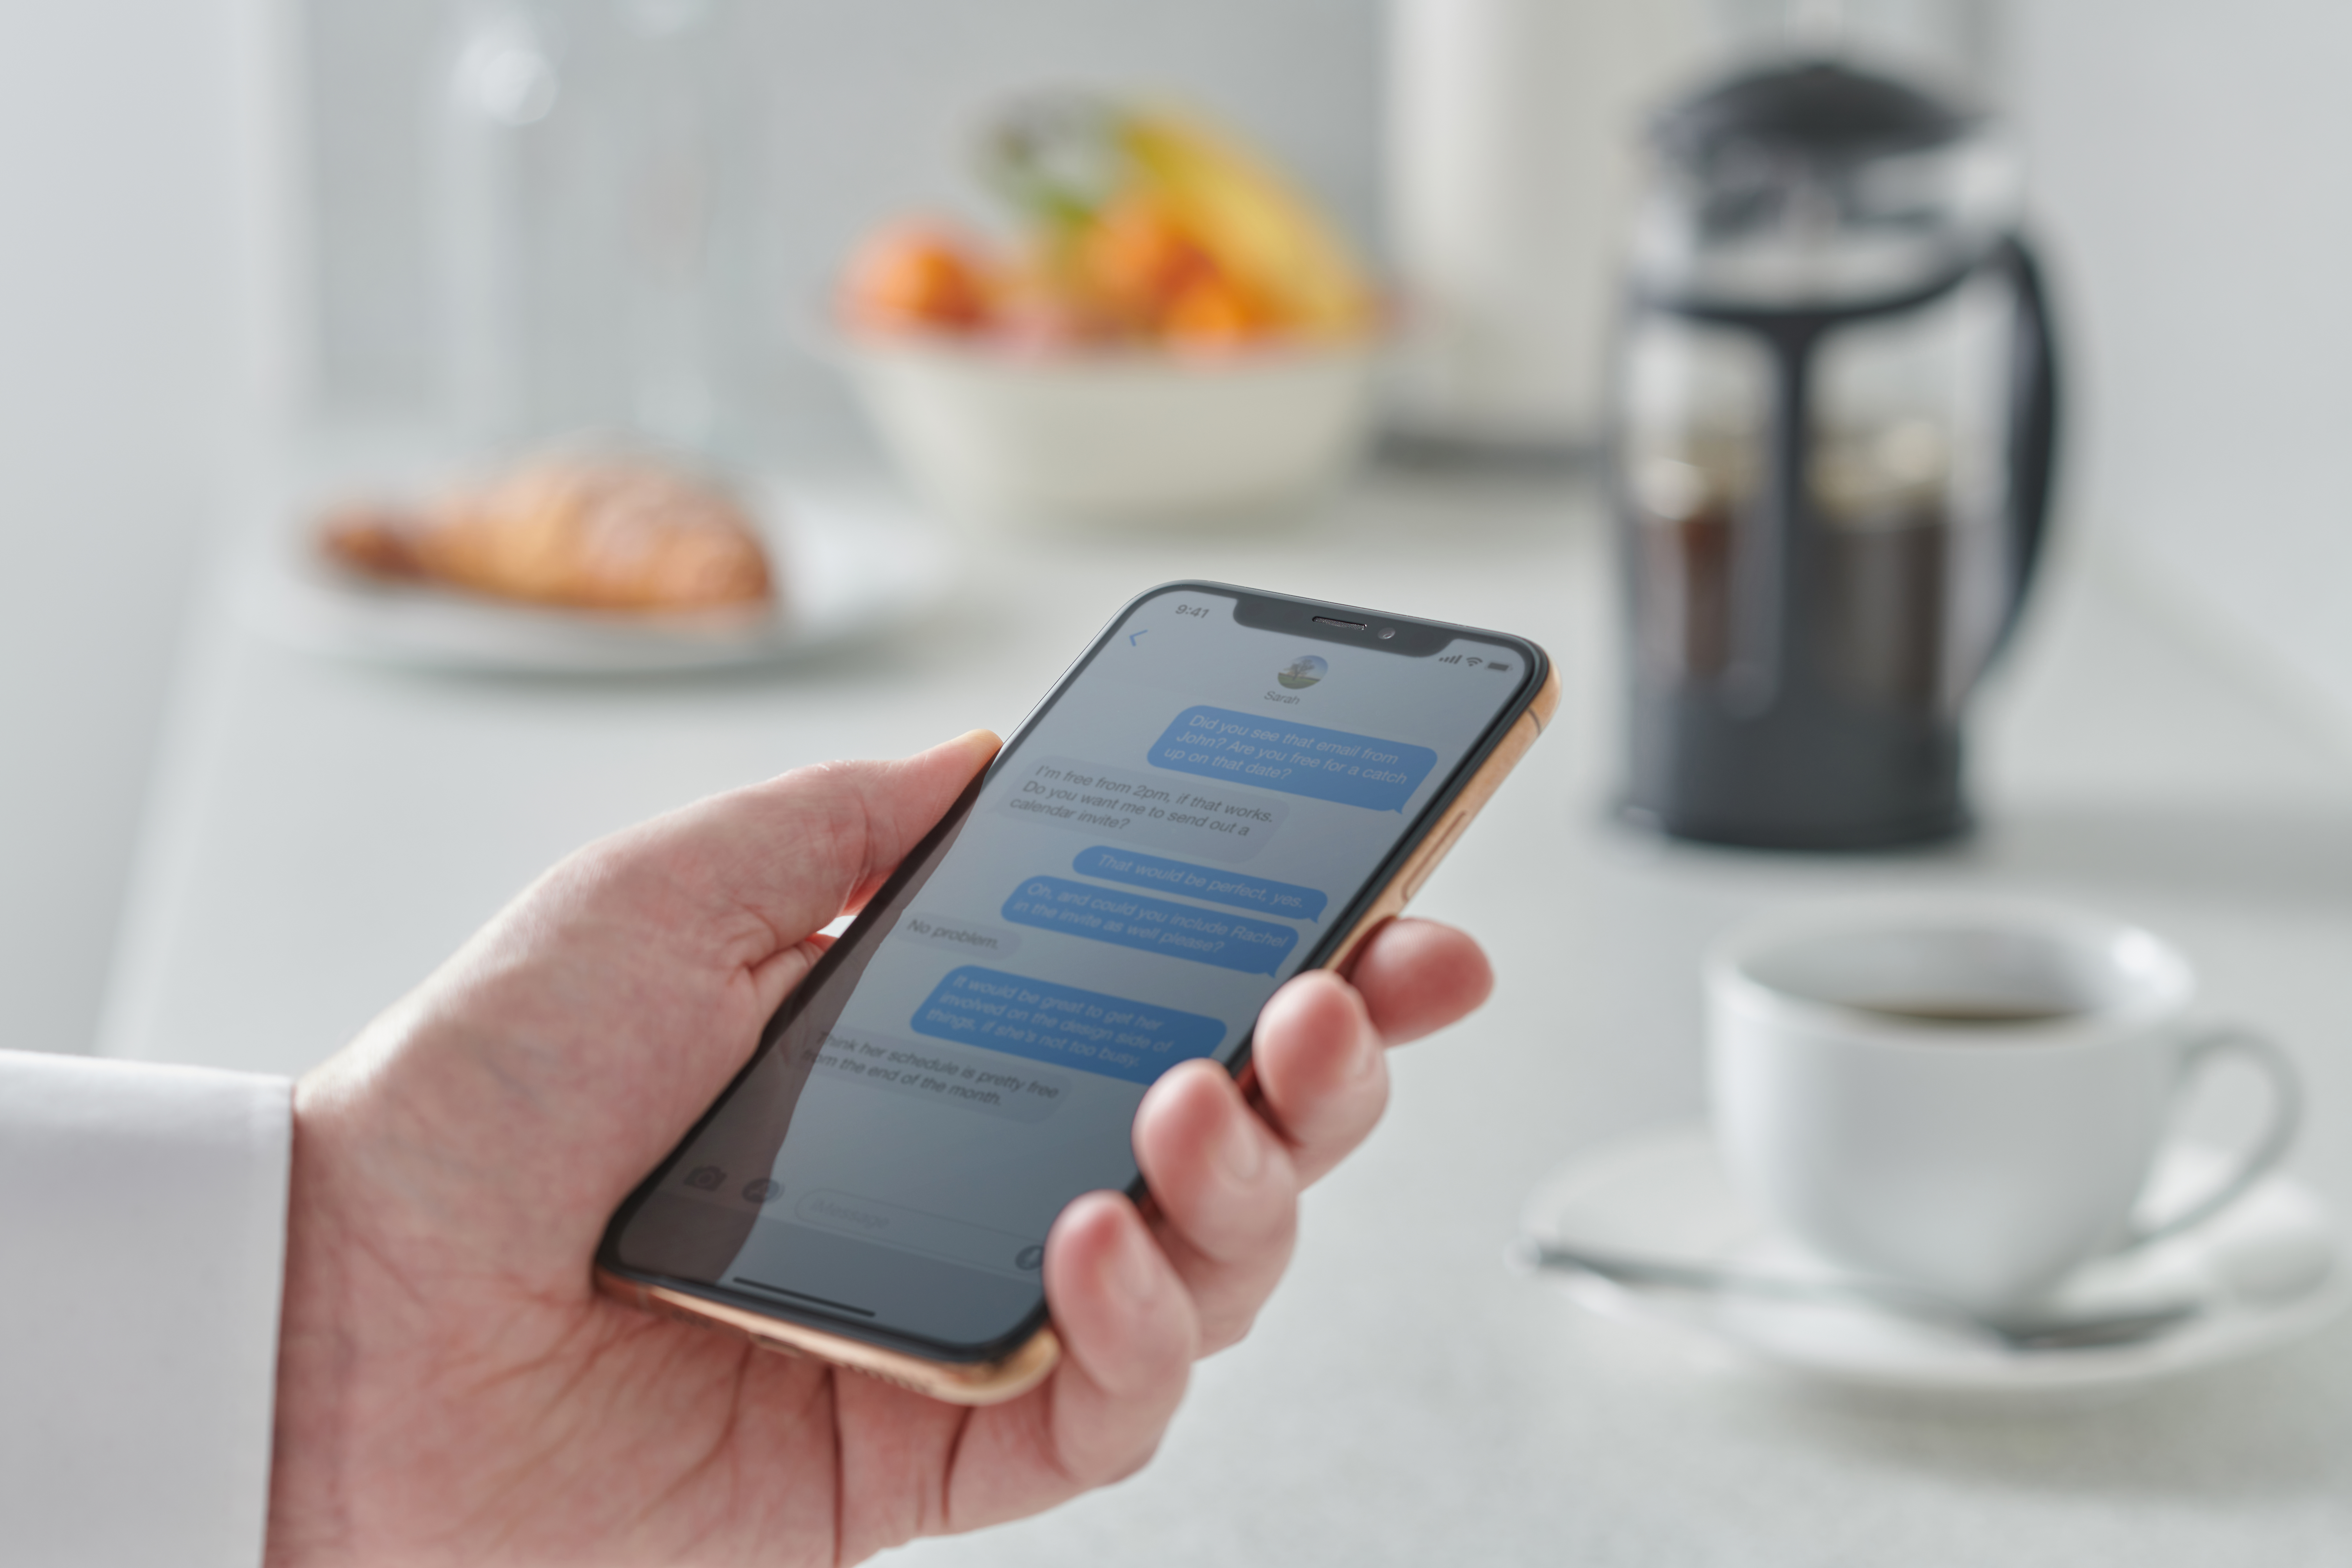 A hand holding a smartphone displaying iMessage. A table with coffee and fruit is visible in the background.